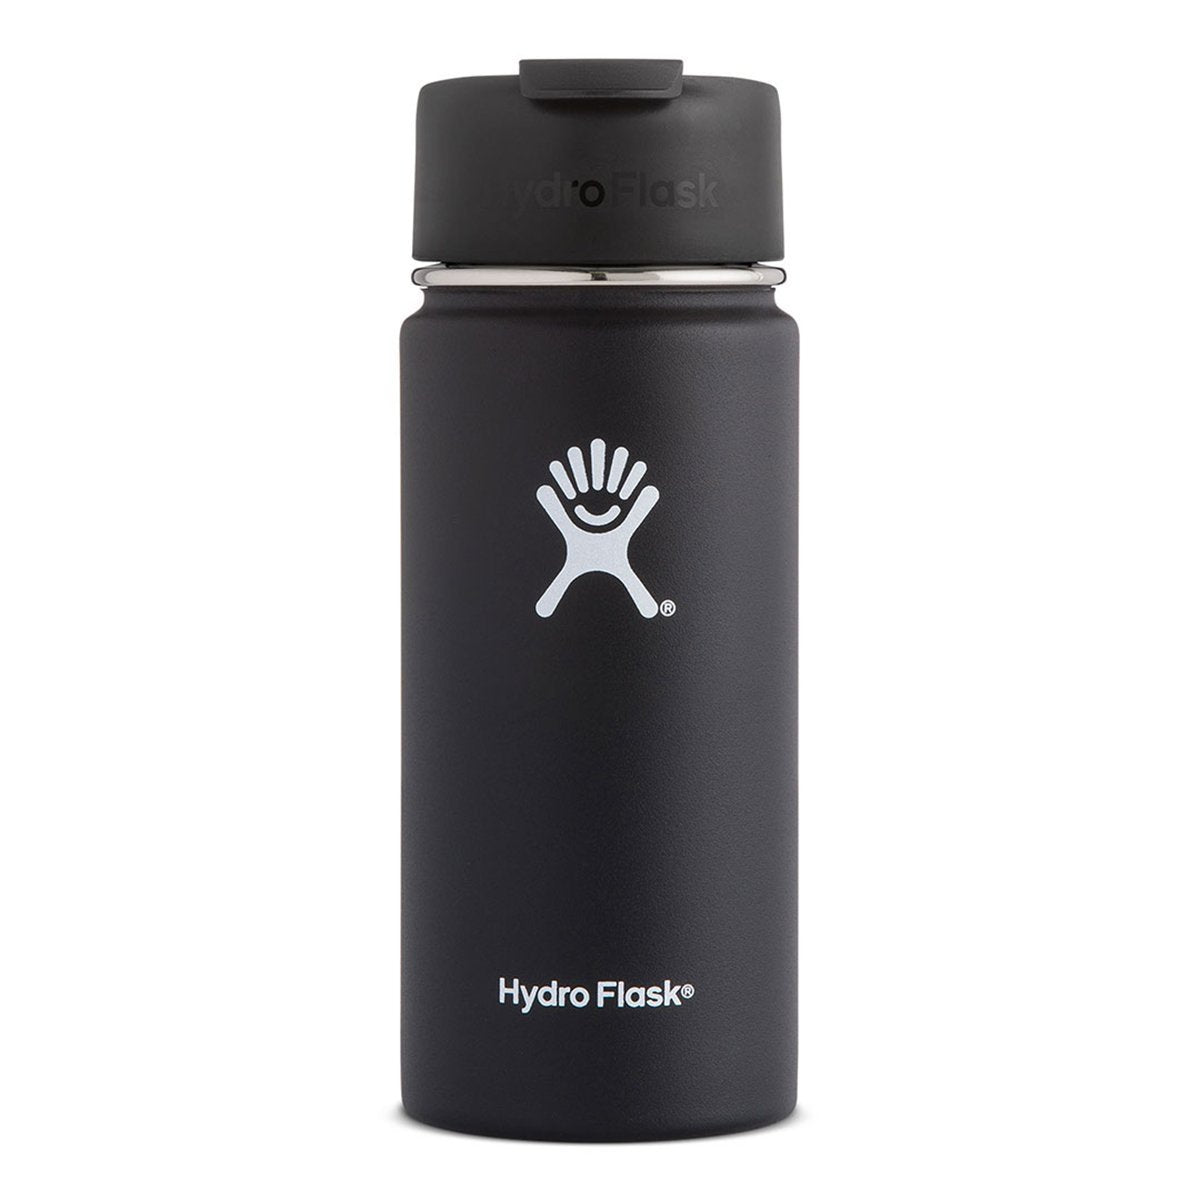 Hydro Flask - Coffee Flask 16 oz - Tea Flask, Vacuum Flask - Black